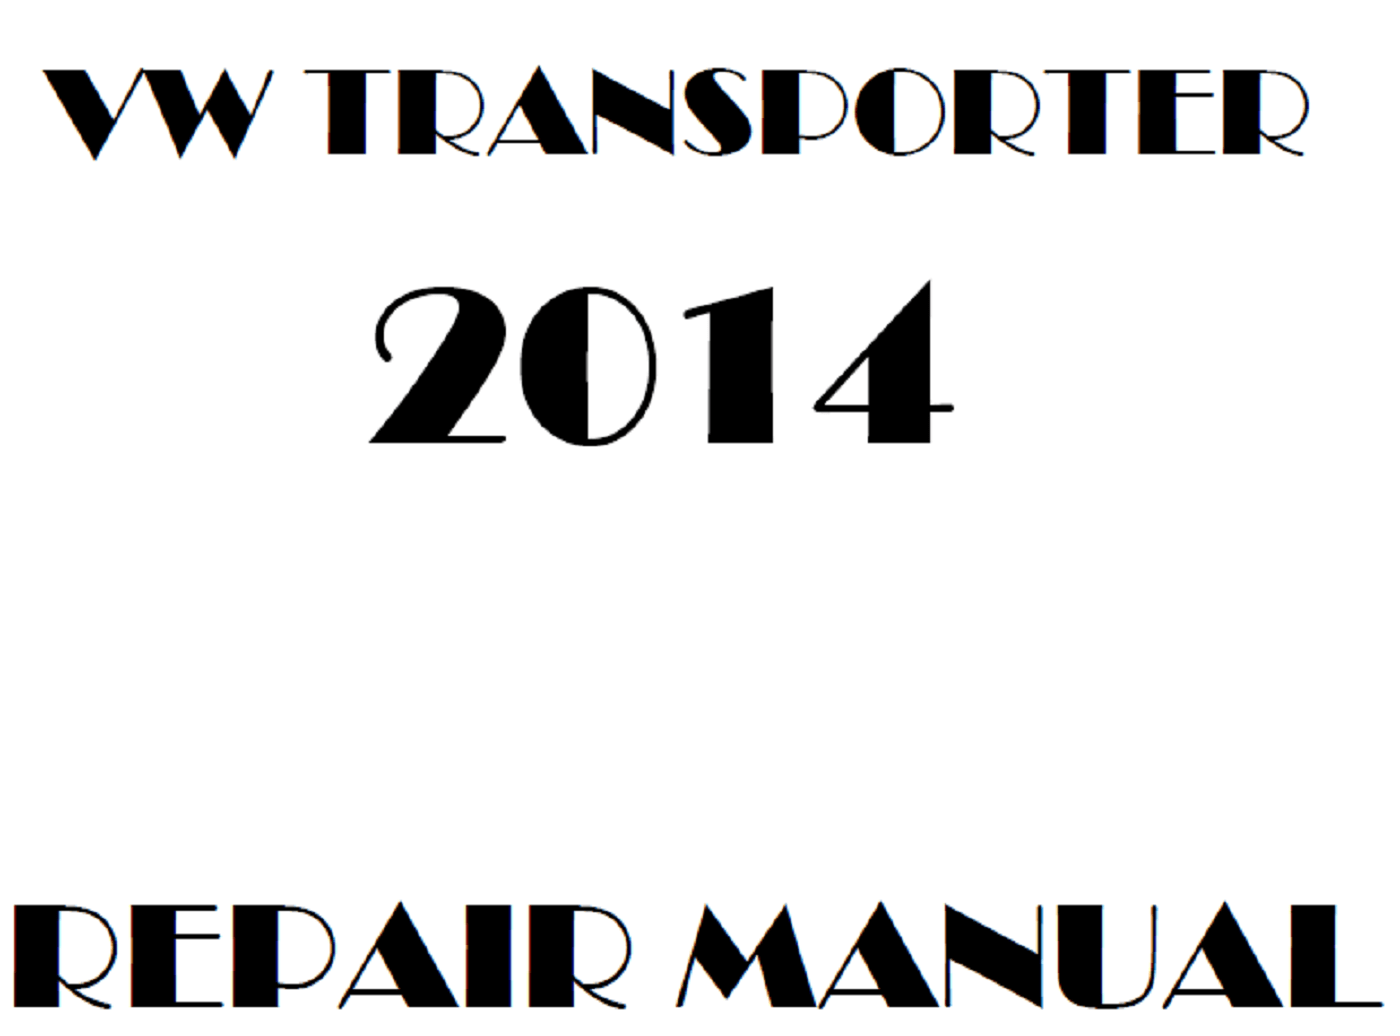 2014 Volkswagen Transporter repair manual